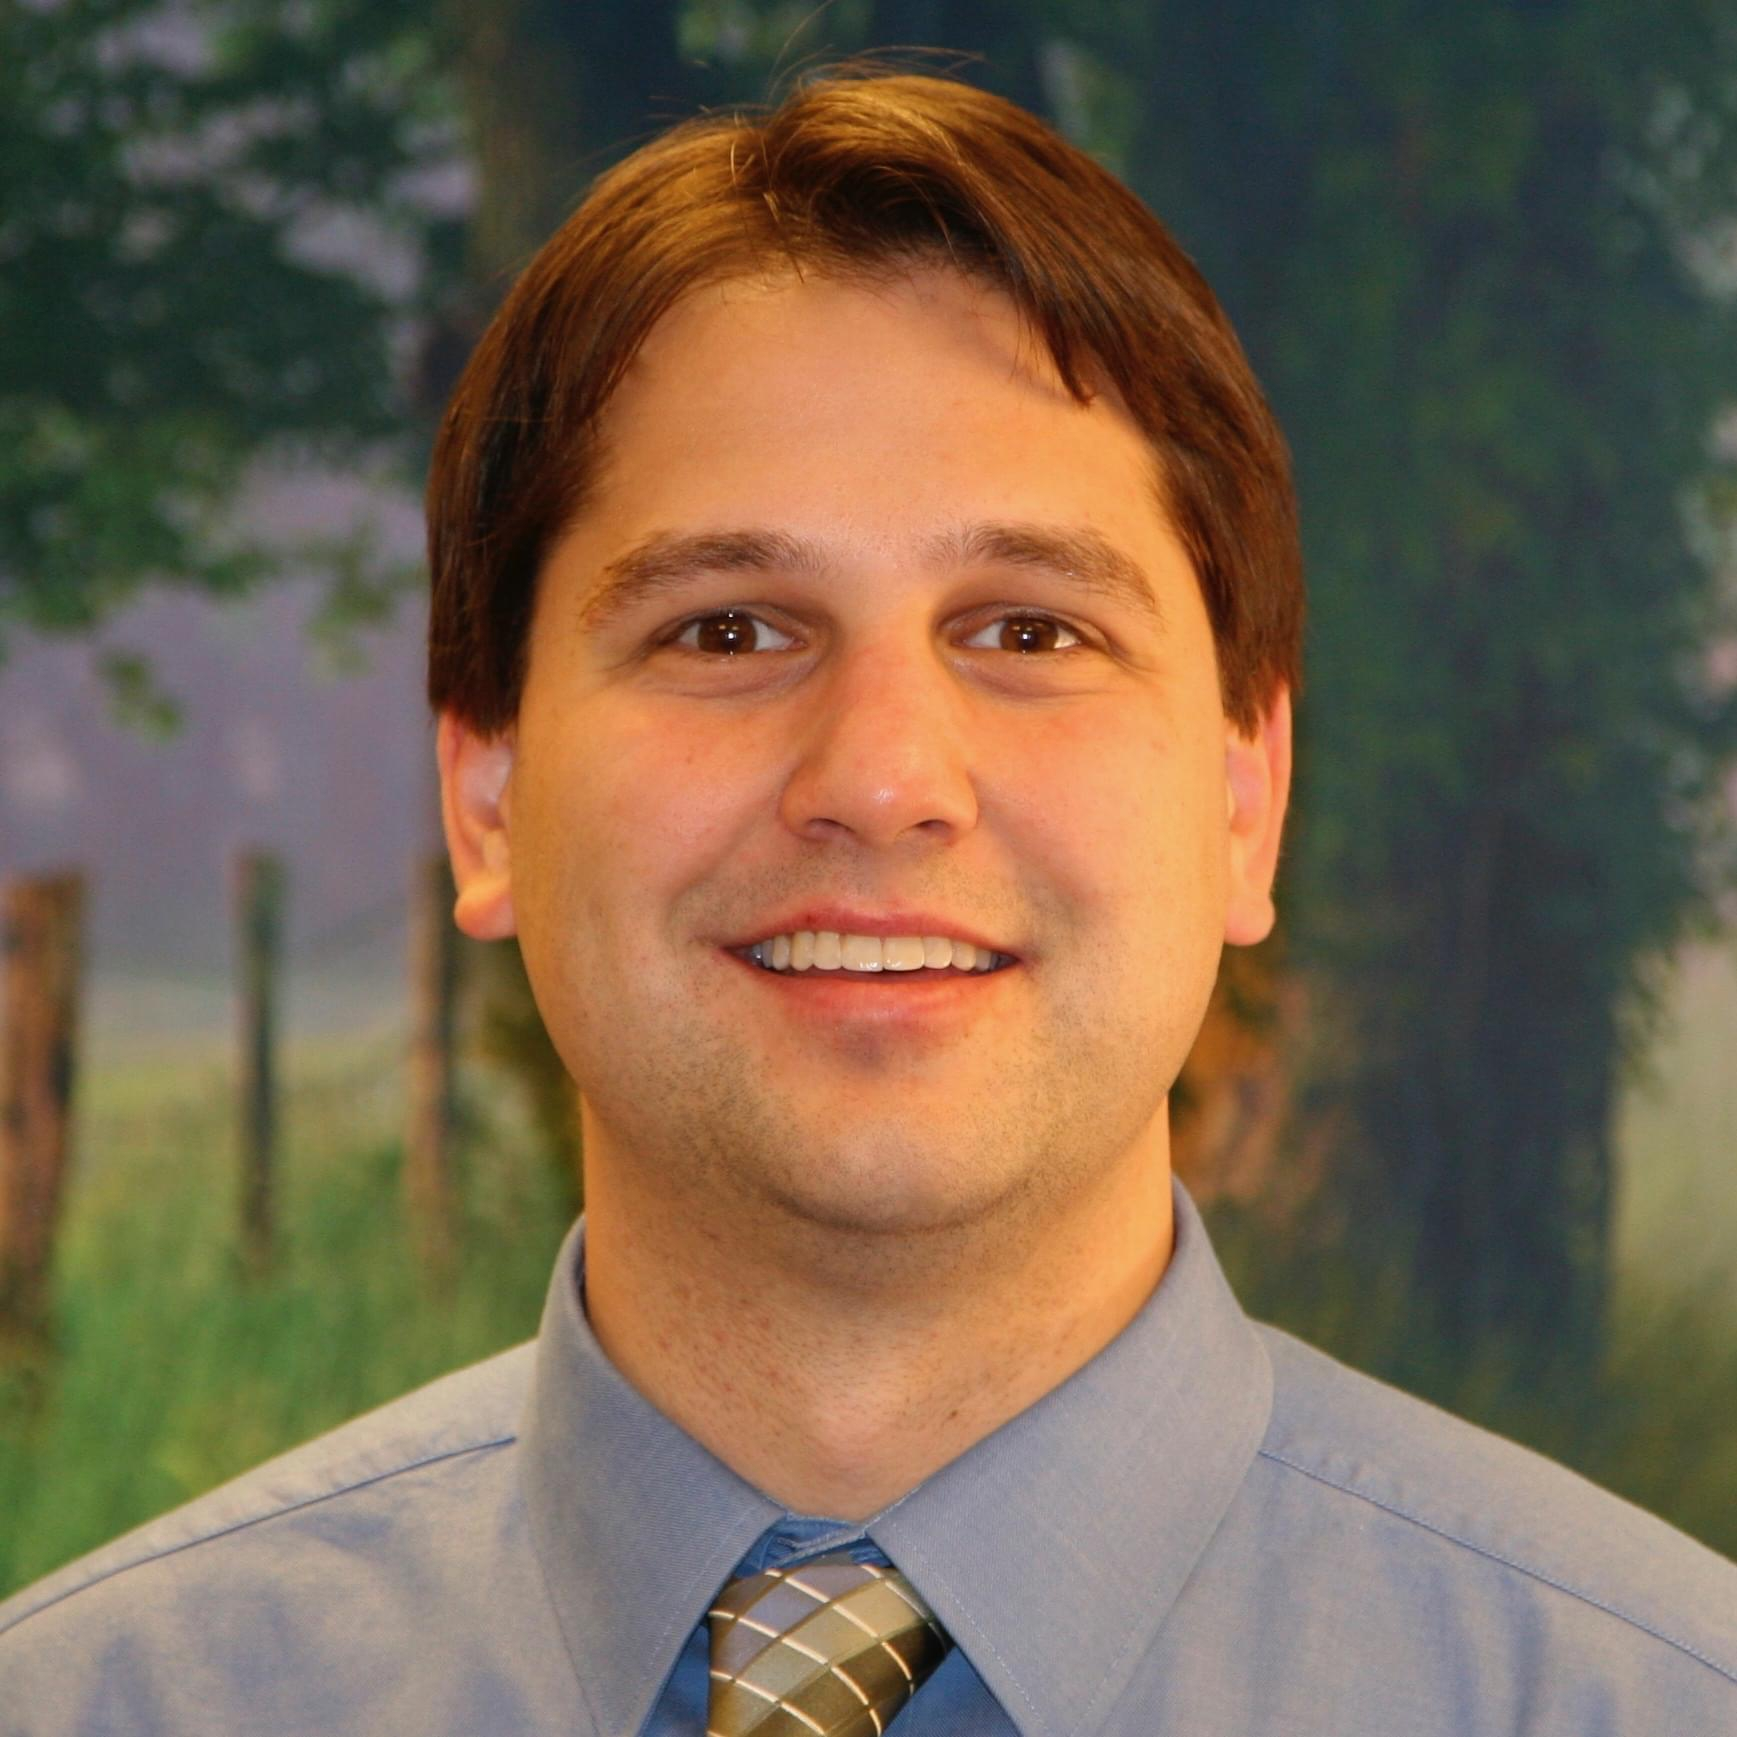 Dr. Michael A. Fearing